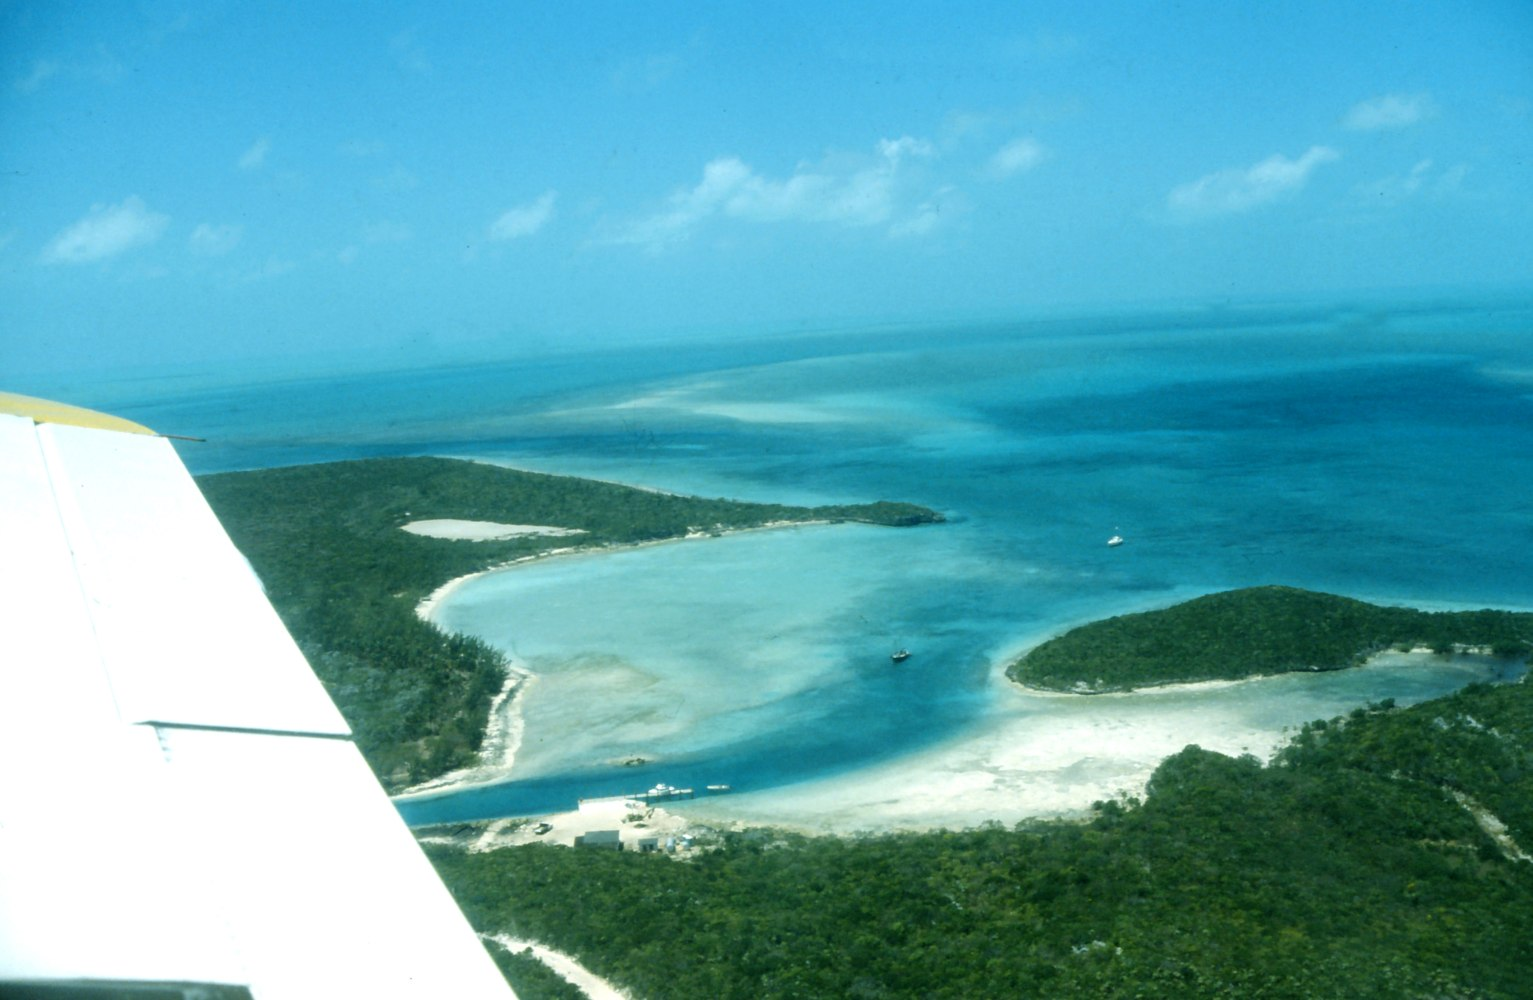 Private Islands for sale - Big Darby Island - Bahamas ...